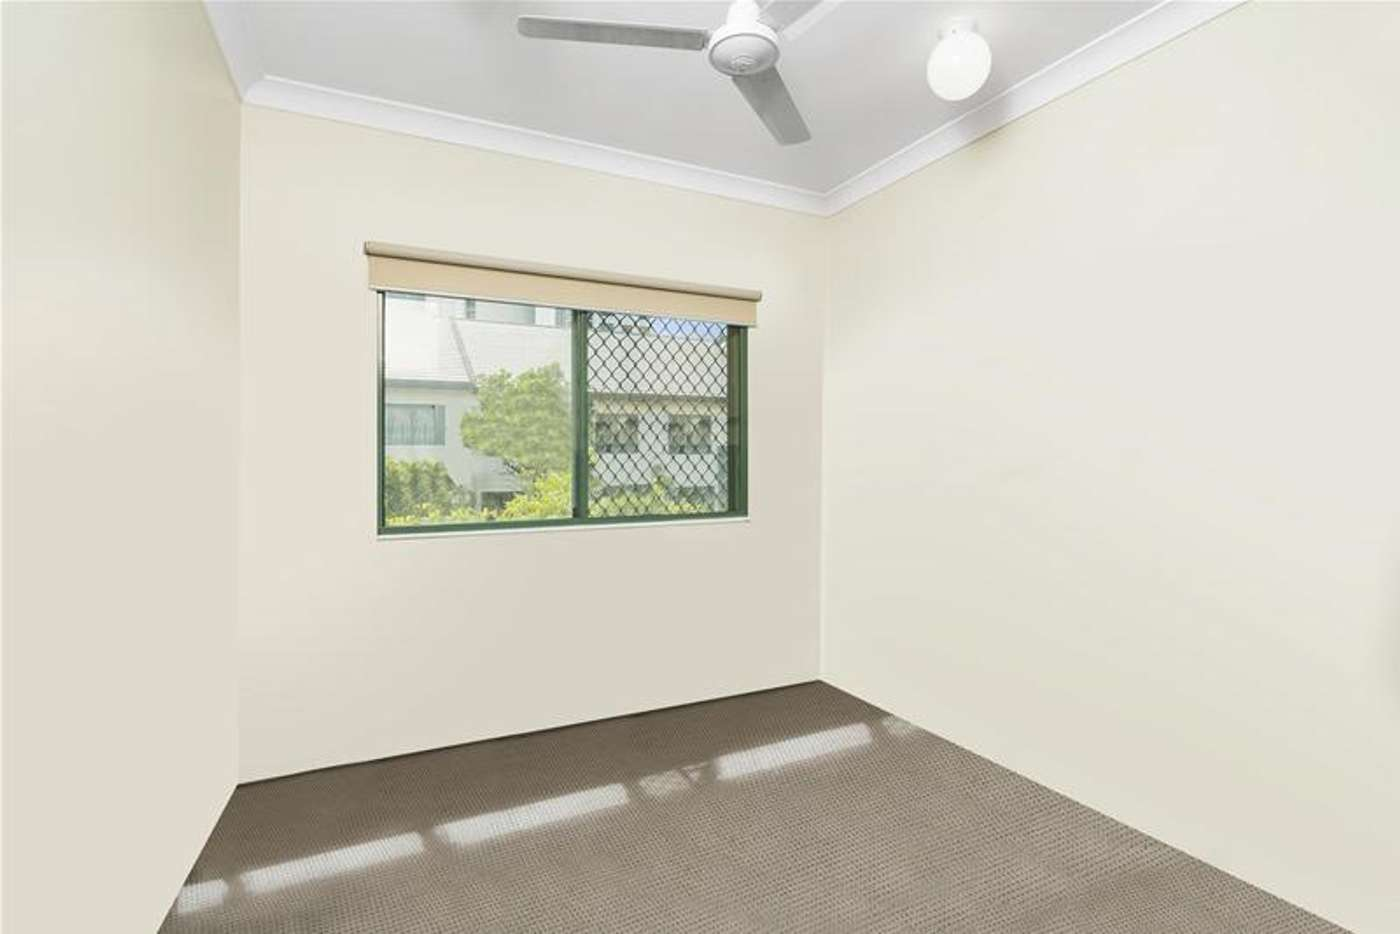 Fifth view of Homely apartment listing, 122/955 Gold Coast Highway, Palm Beach QLD 4221